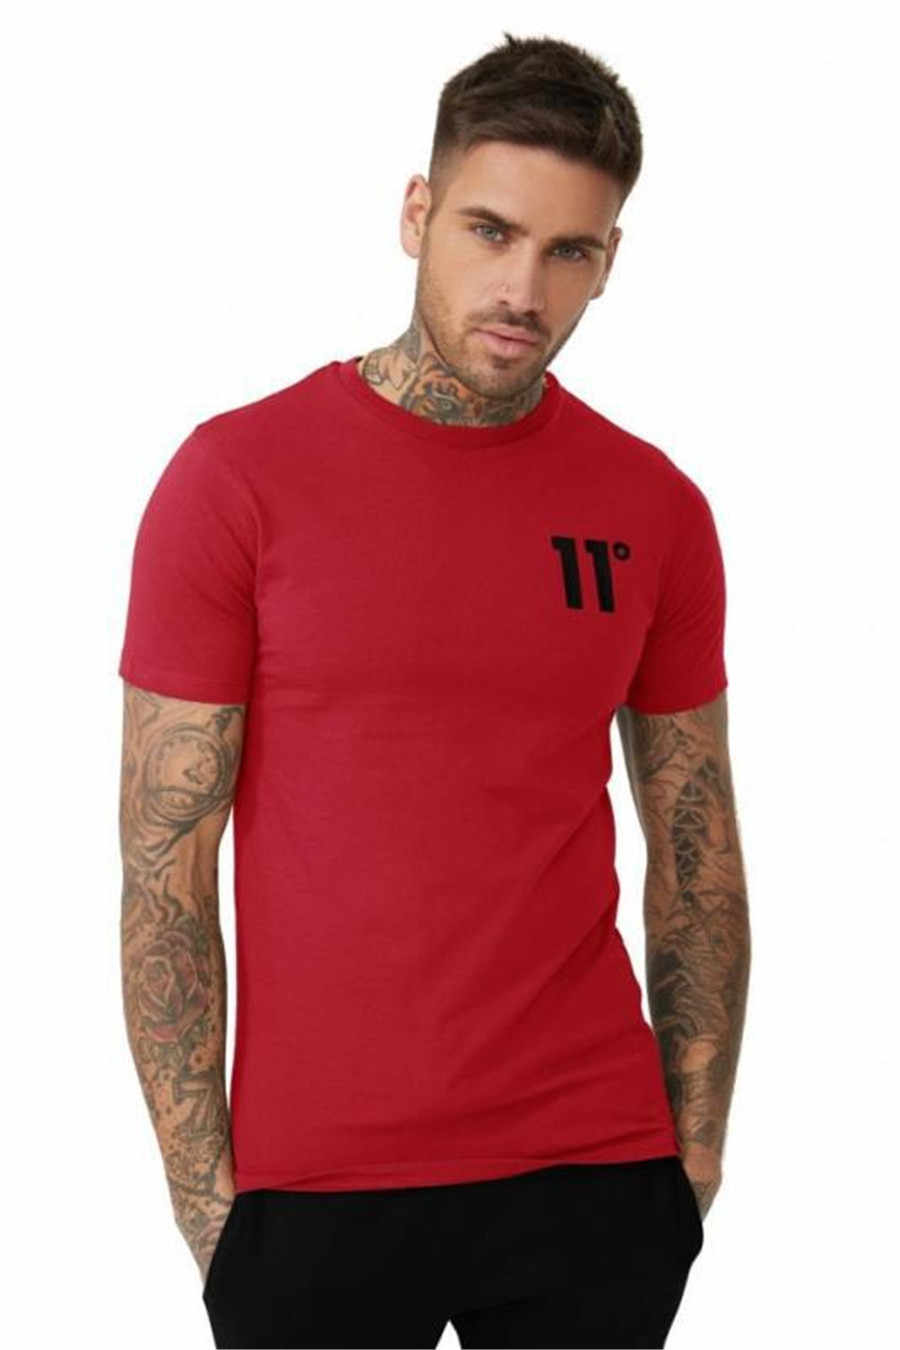 Men Short sleeve Cotton T-shirt Casual Fashion Slim t shirt Male Gyms Fitness Bodybuilding Workout Tee shirt Tops clothing men